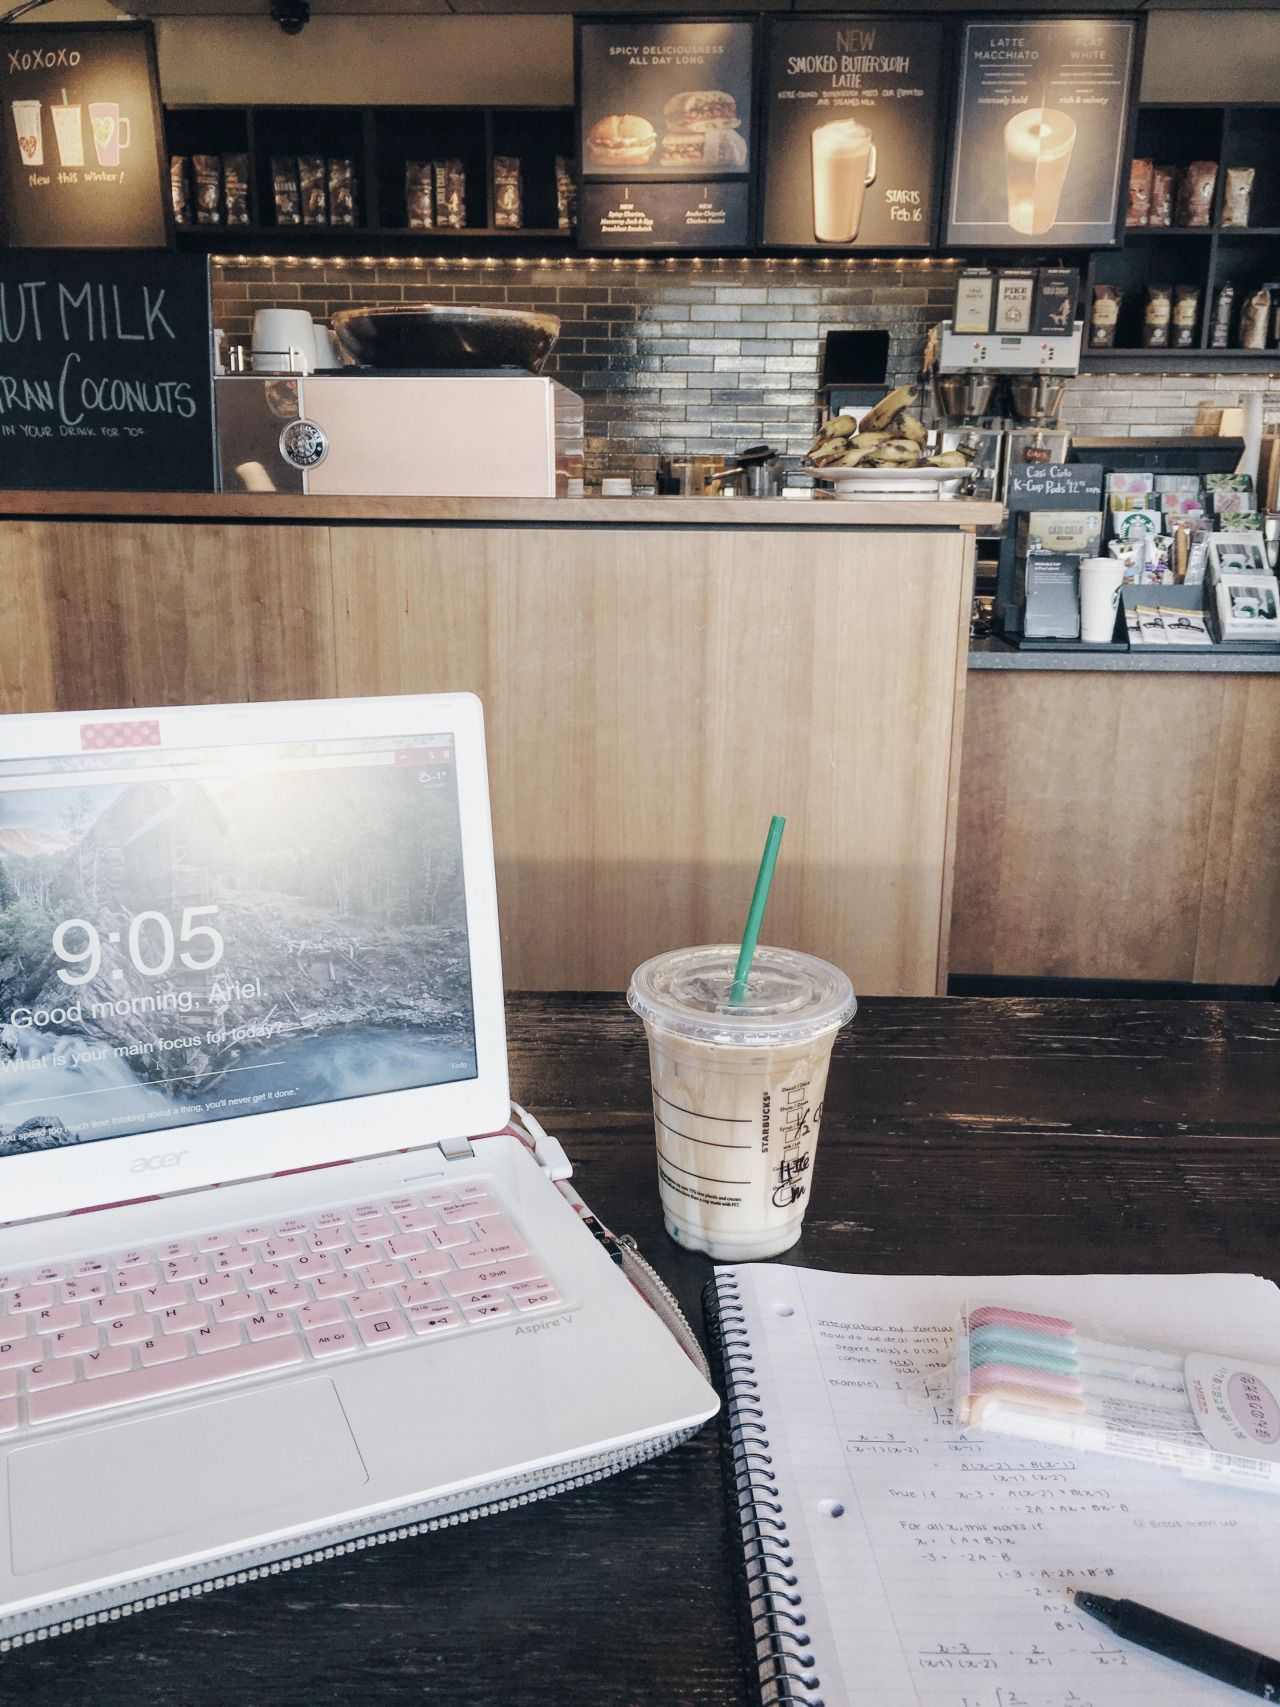 A laptop and coffee on a table in a Starbucks